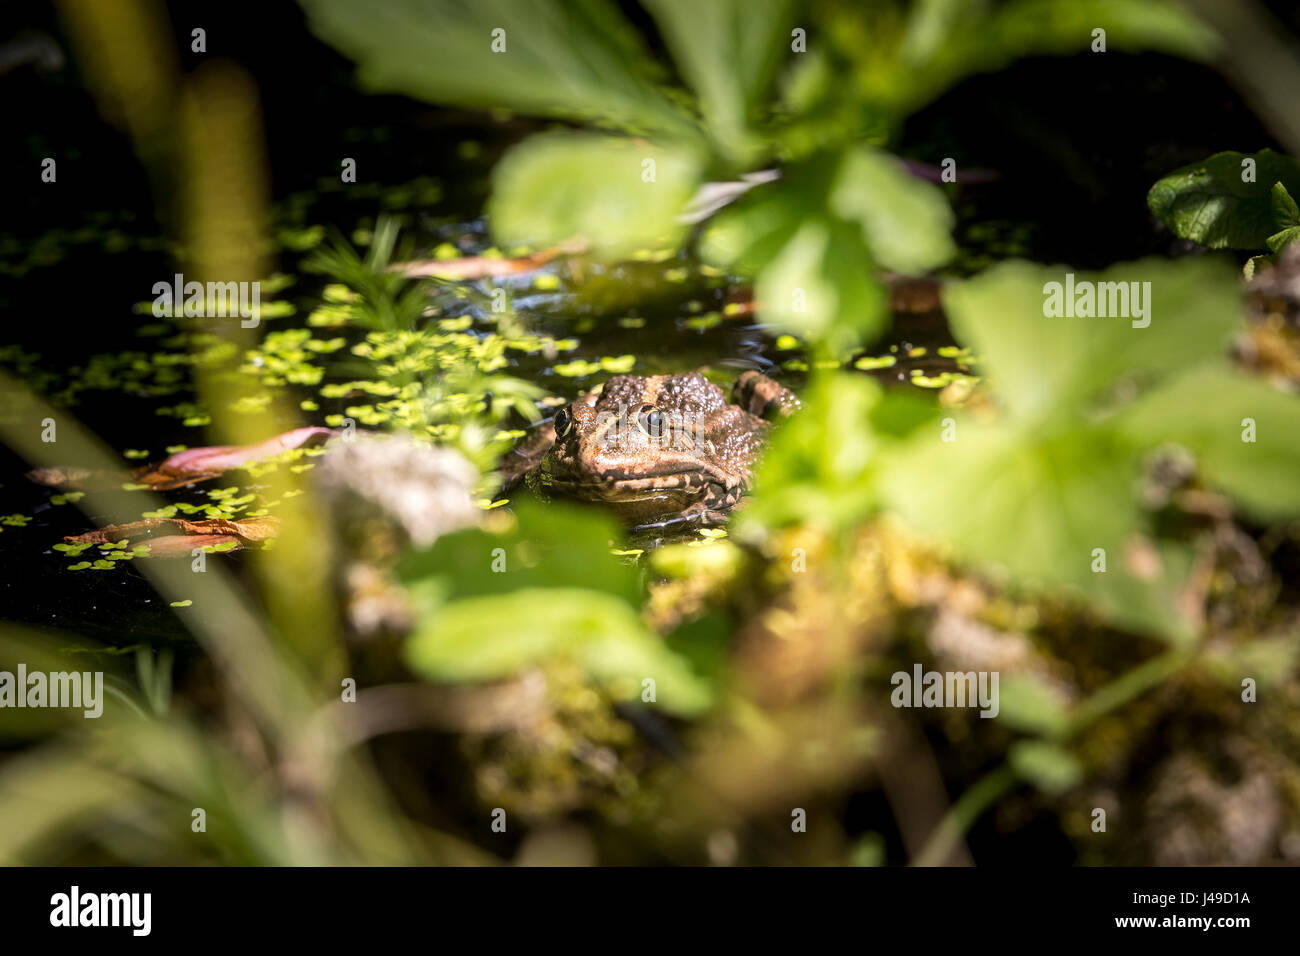 Common frog sunbathing in a pond. Stock Photo